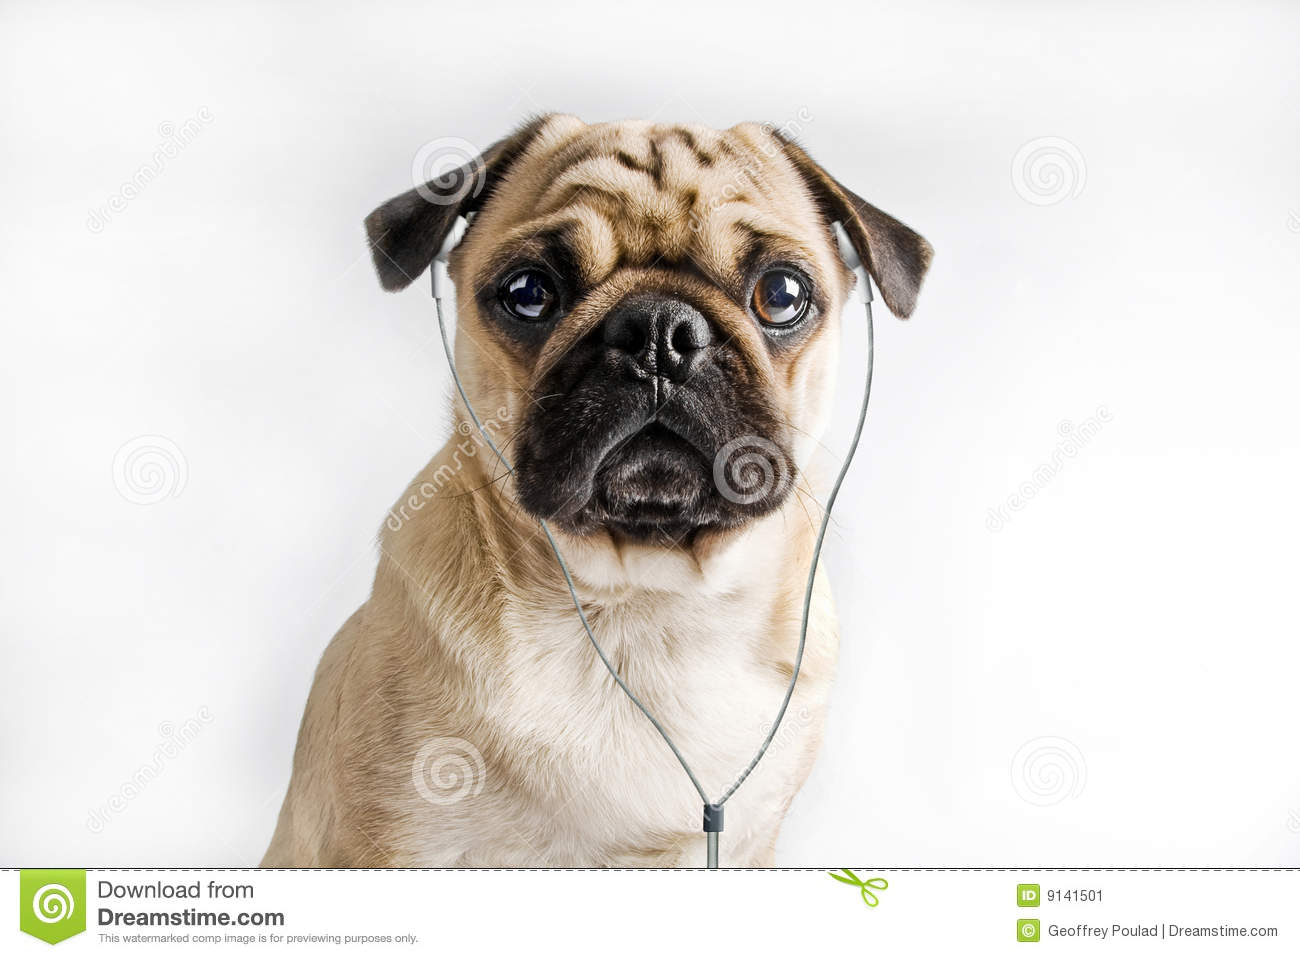 Dog Listening To Music Stock Image - Image: 9141501